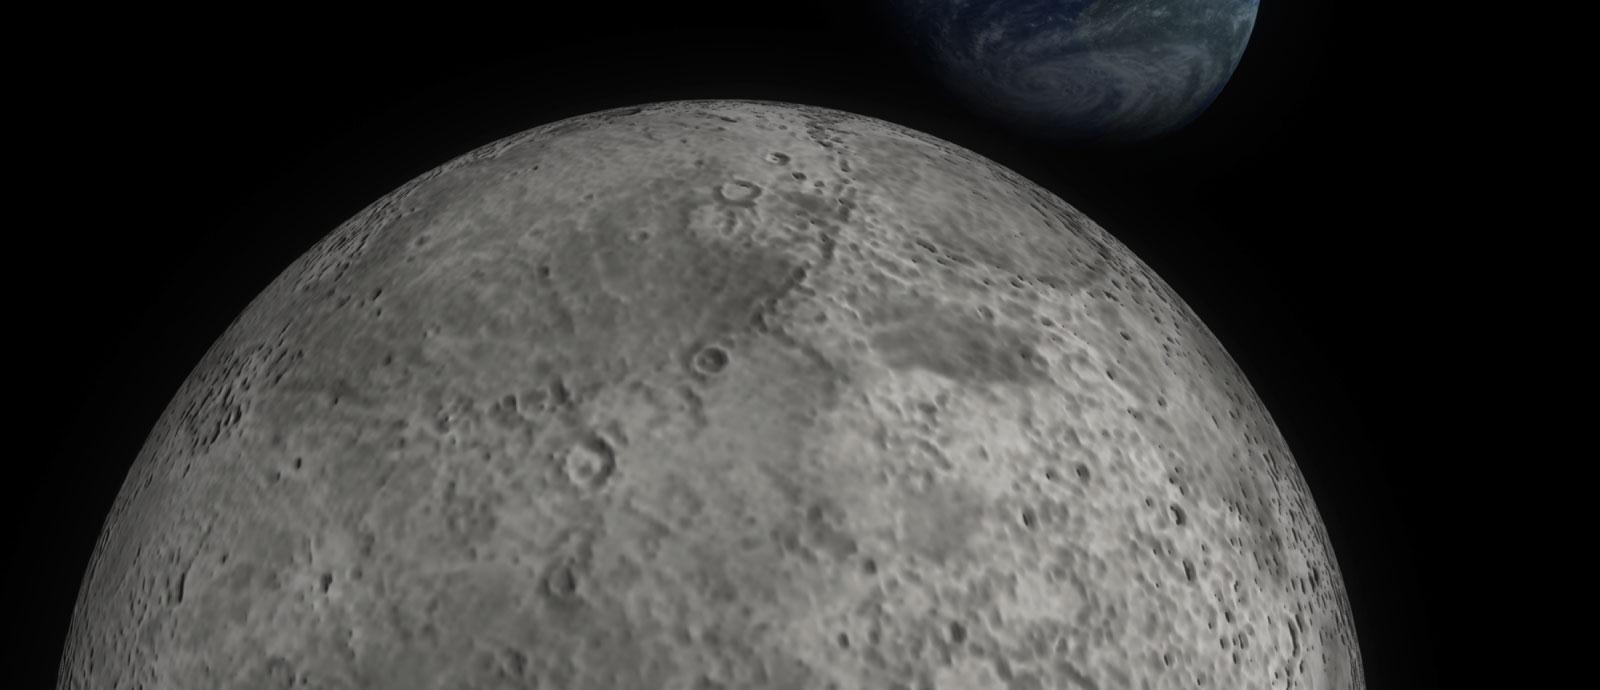 Why We Need to Return to the Moon